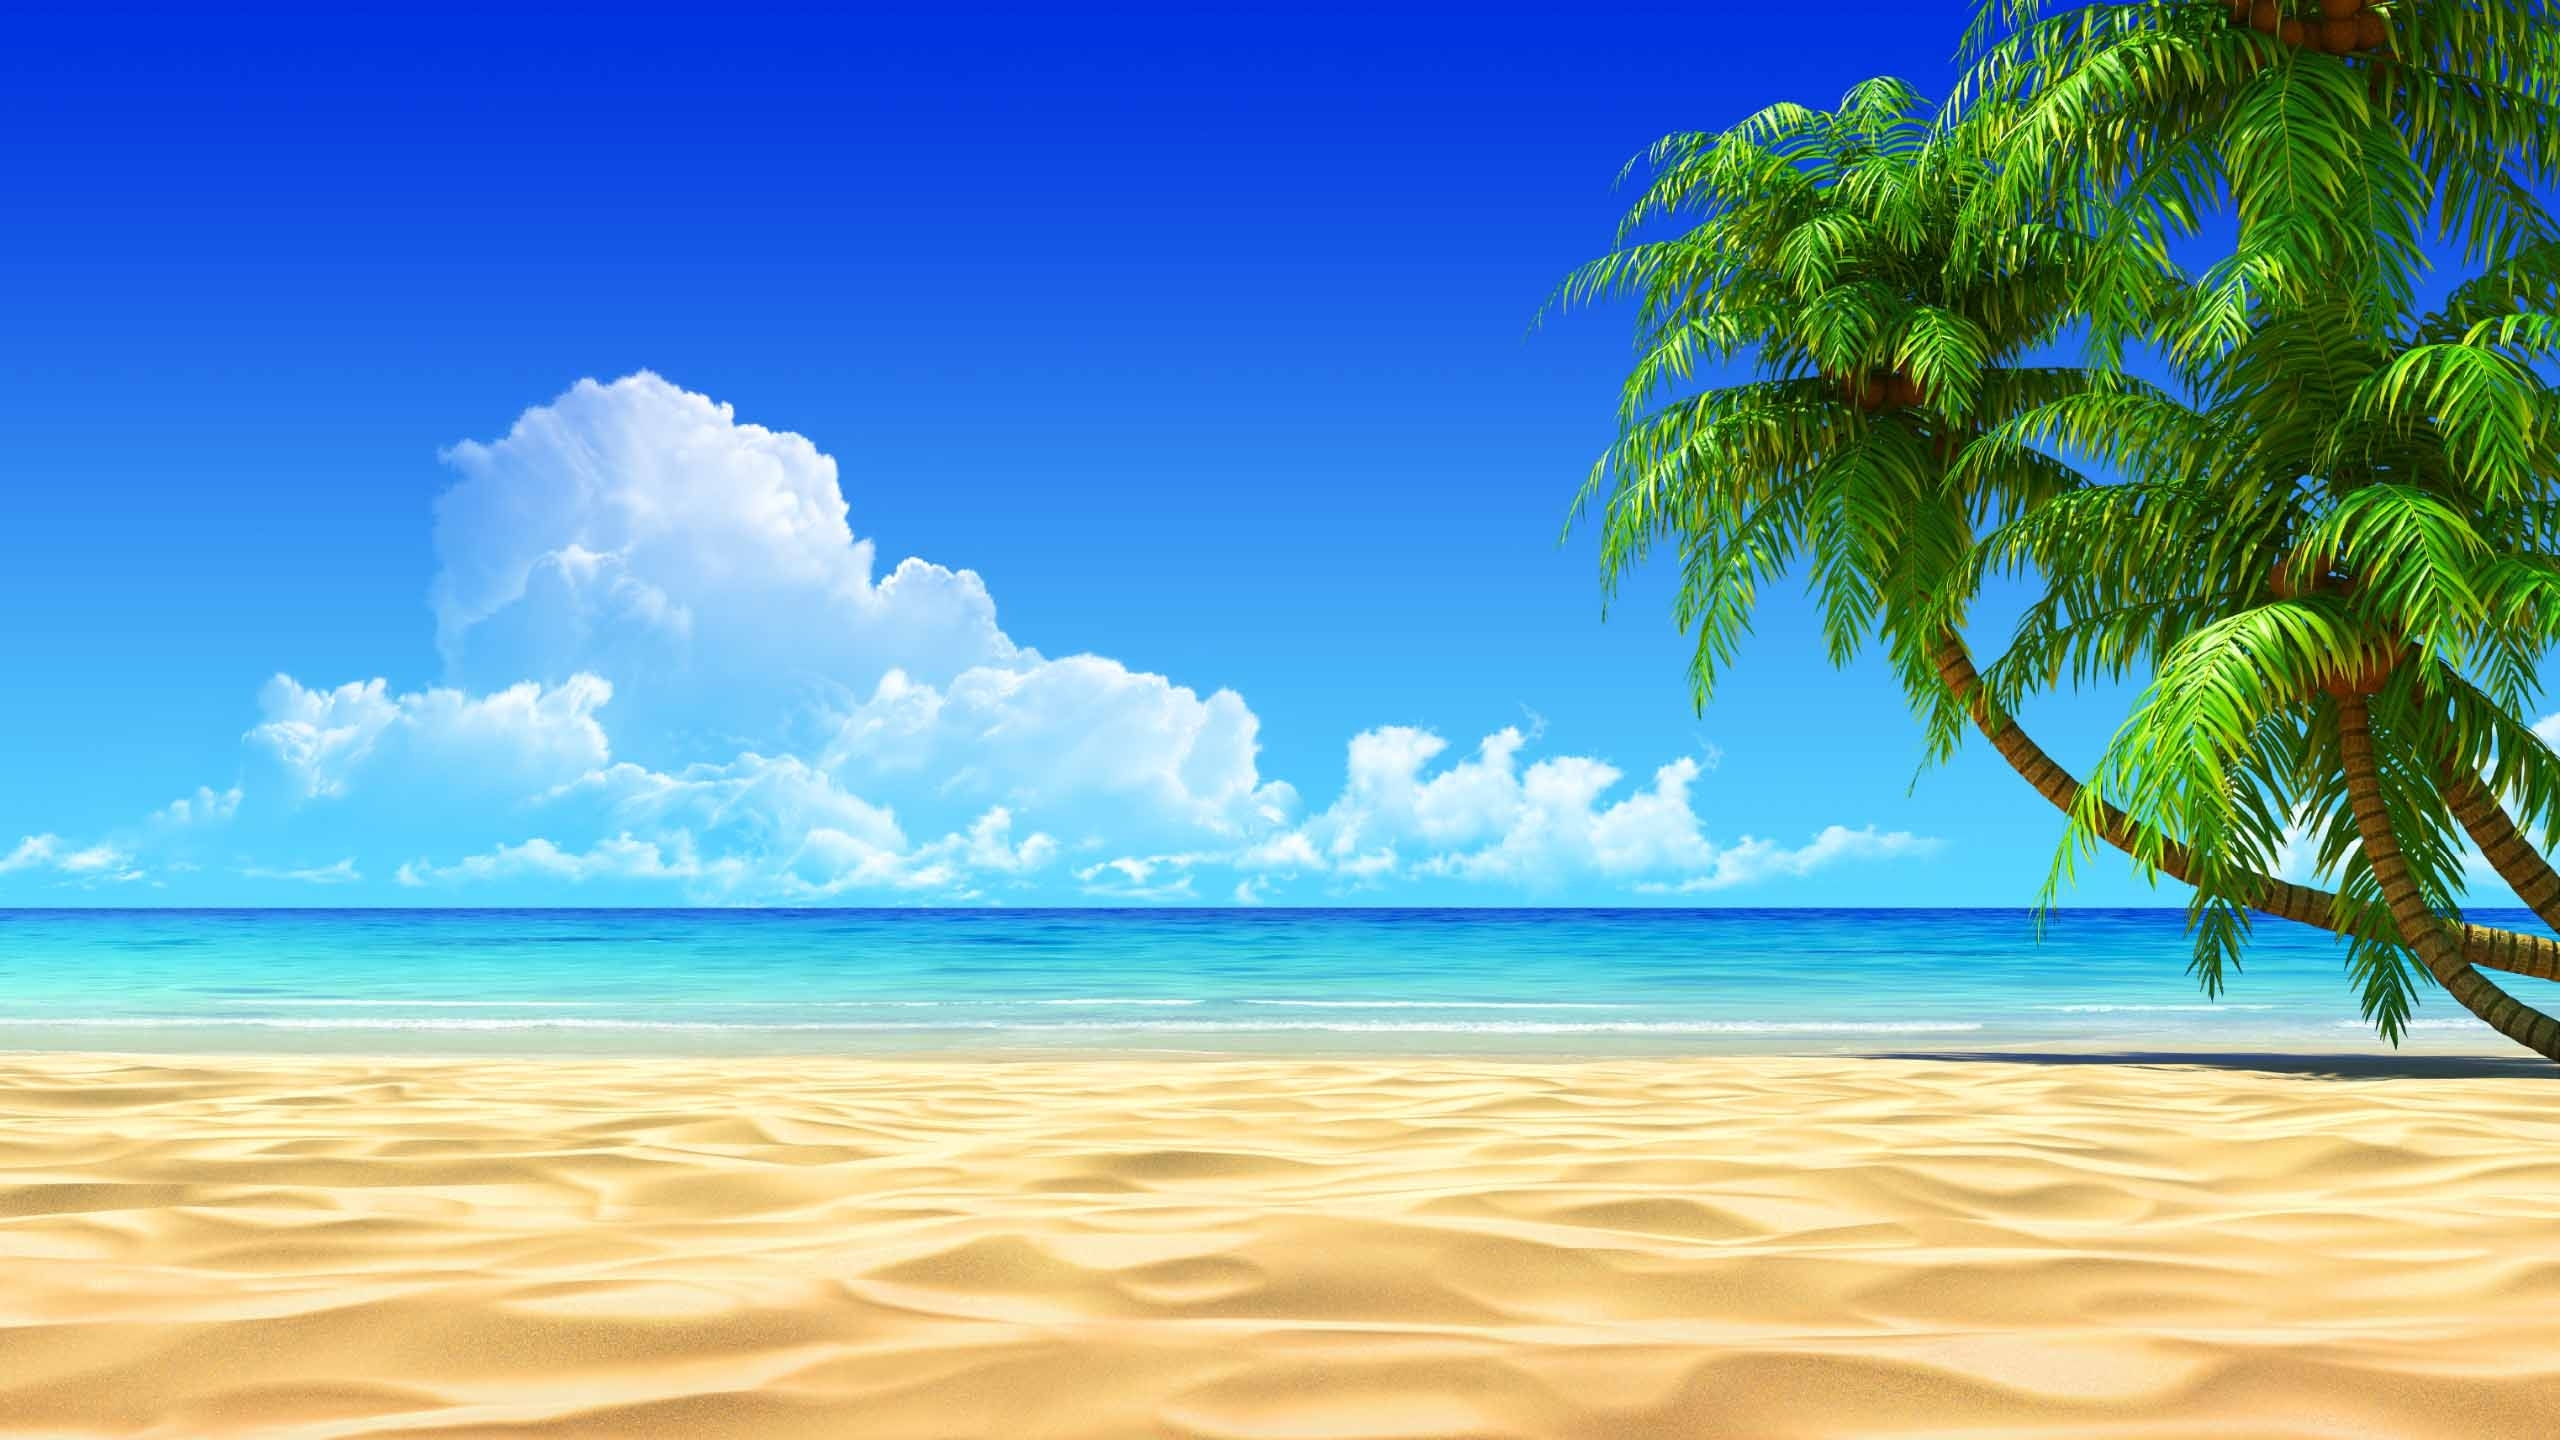 10 new tropical pictures free download full hd 1080p for pc background title free tropical desktop backgrounds wallpaper cave beautiful dimension 2560 x 1440 file type jpgjpeg voltagebd Choice Image